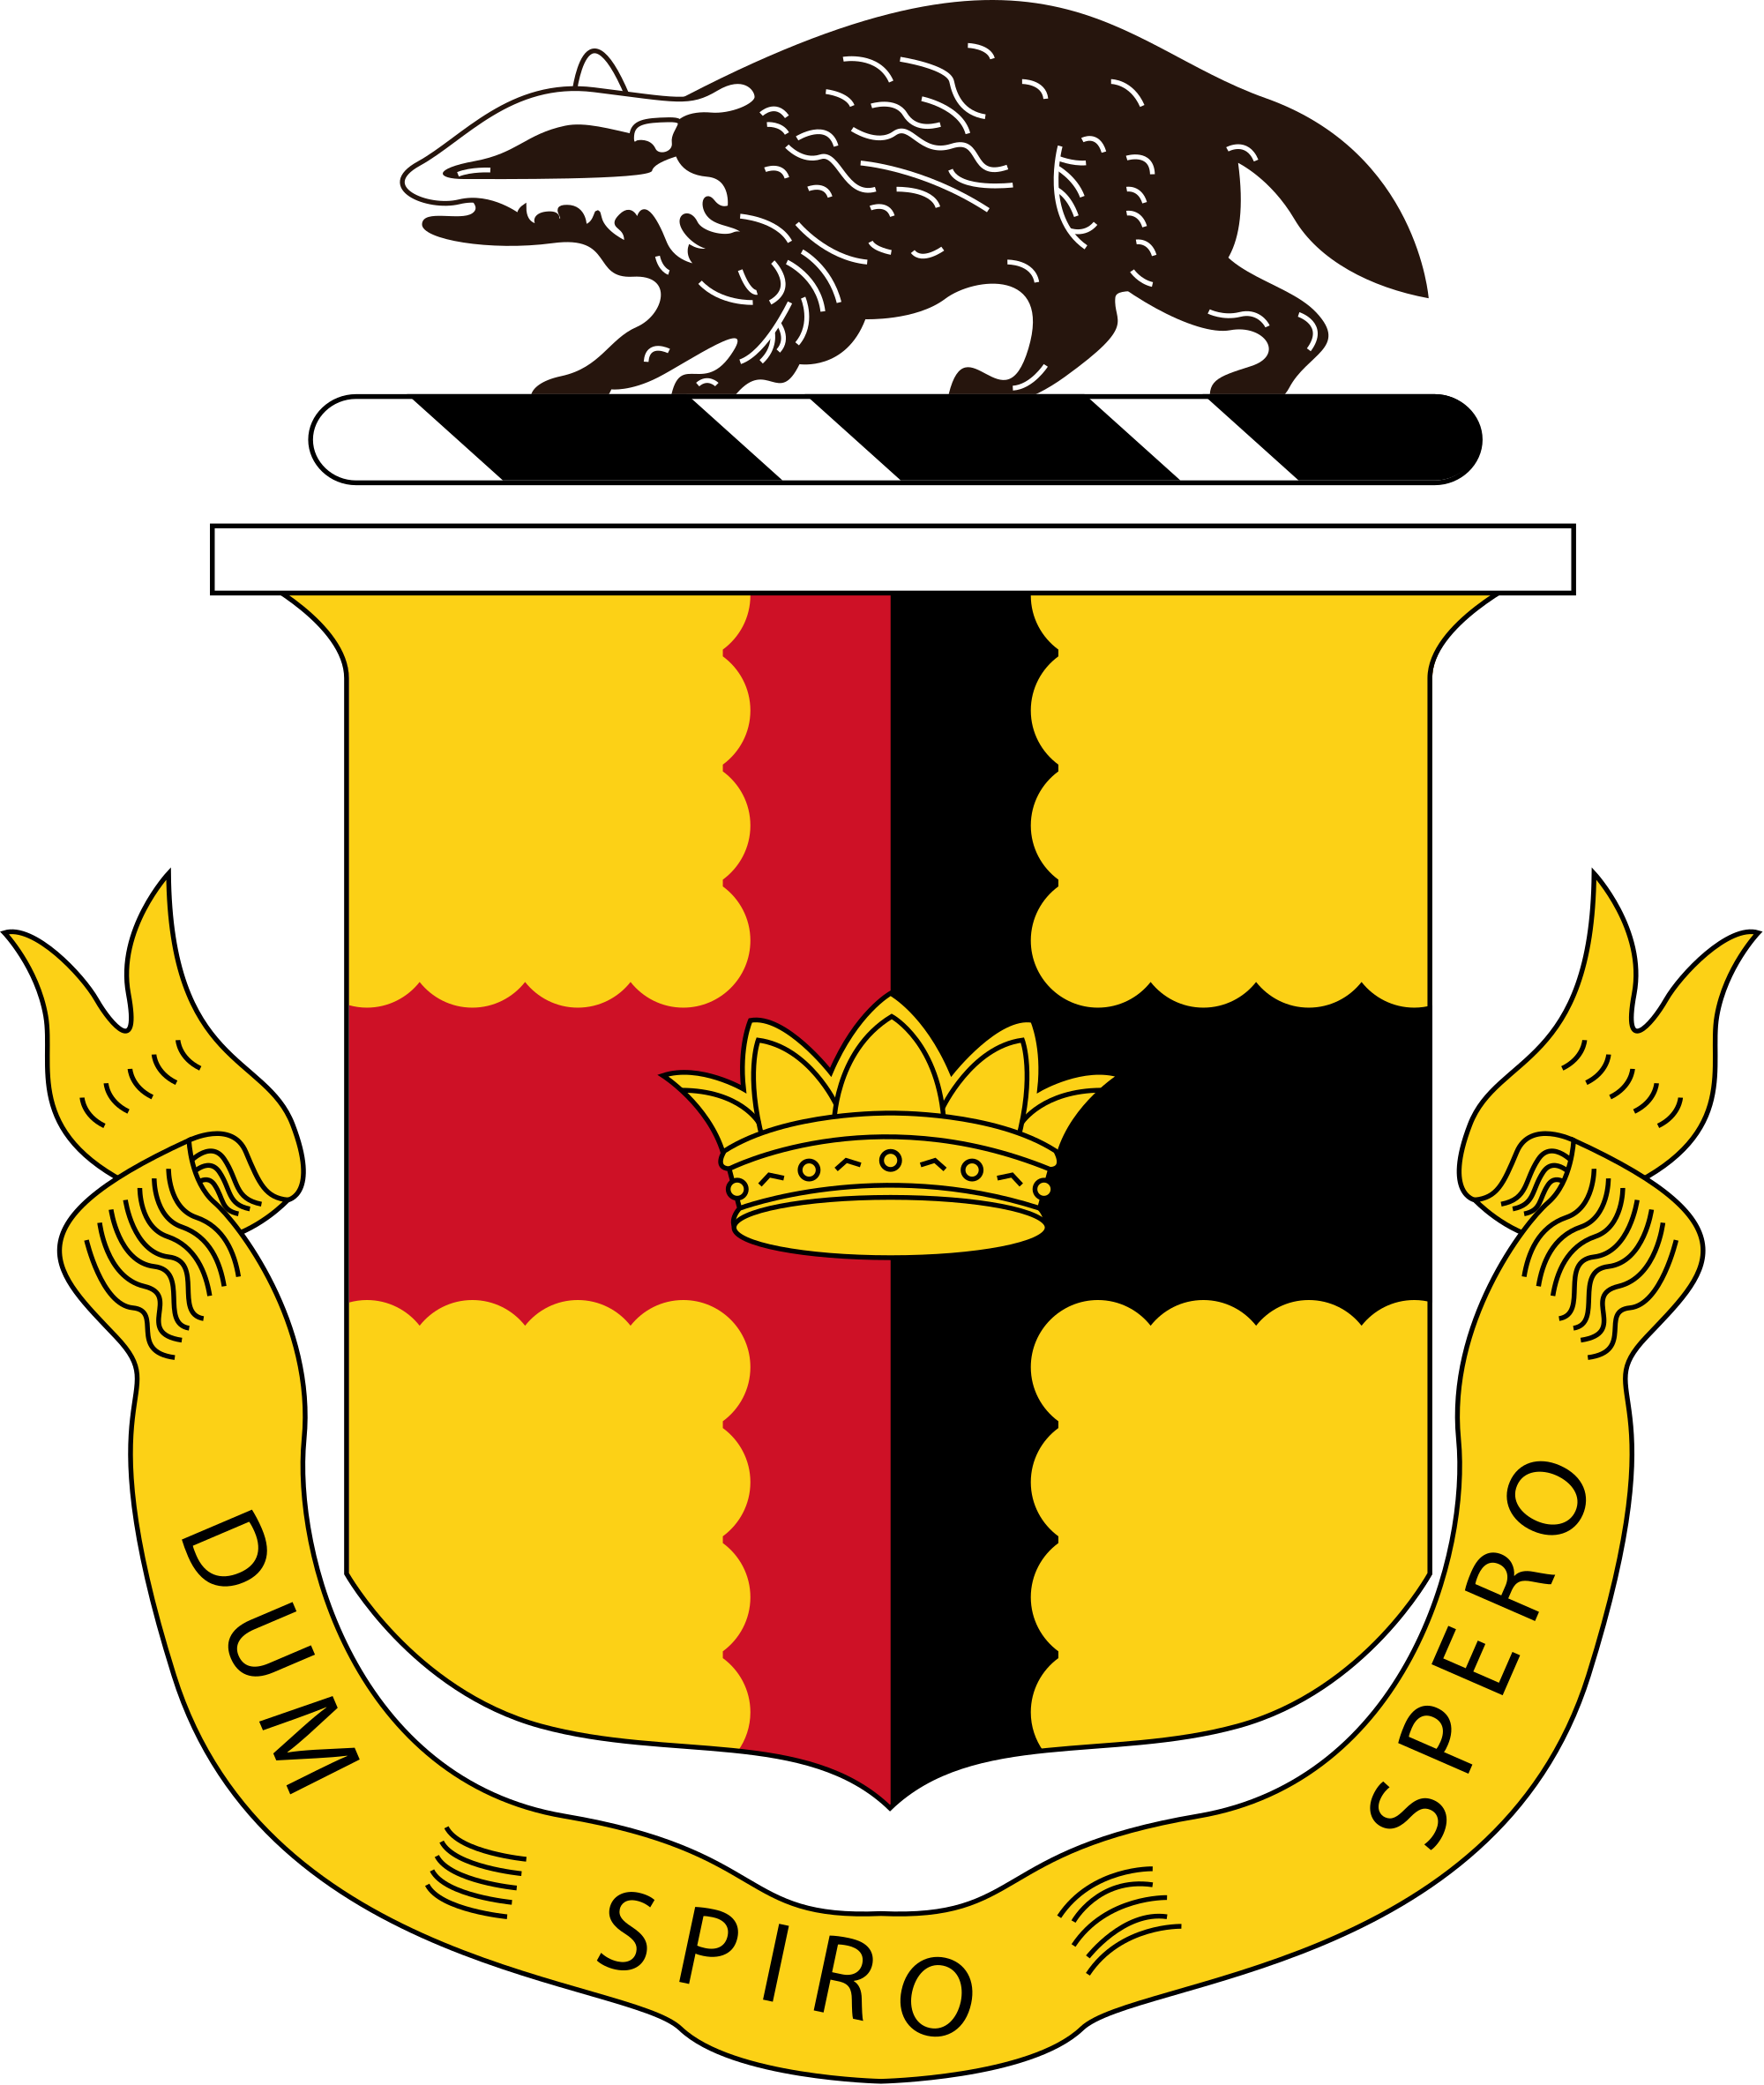 Old stamp crest png. File coat of arms